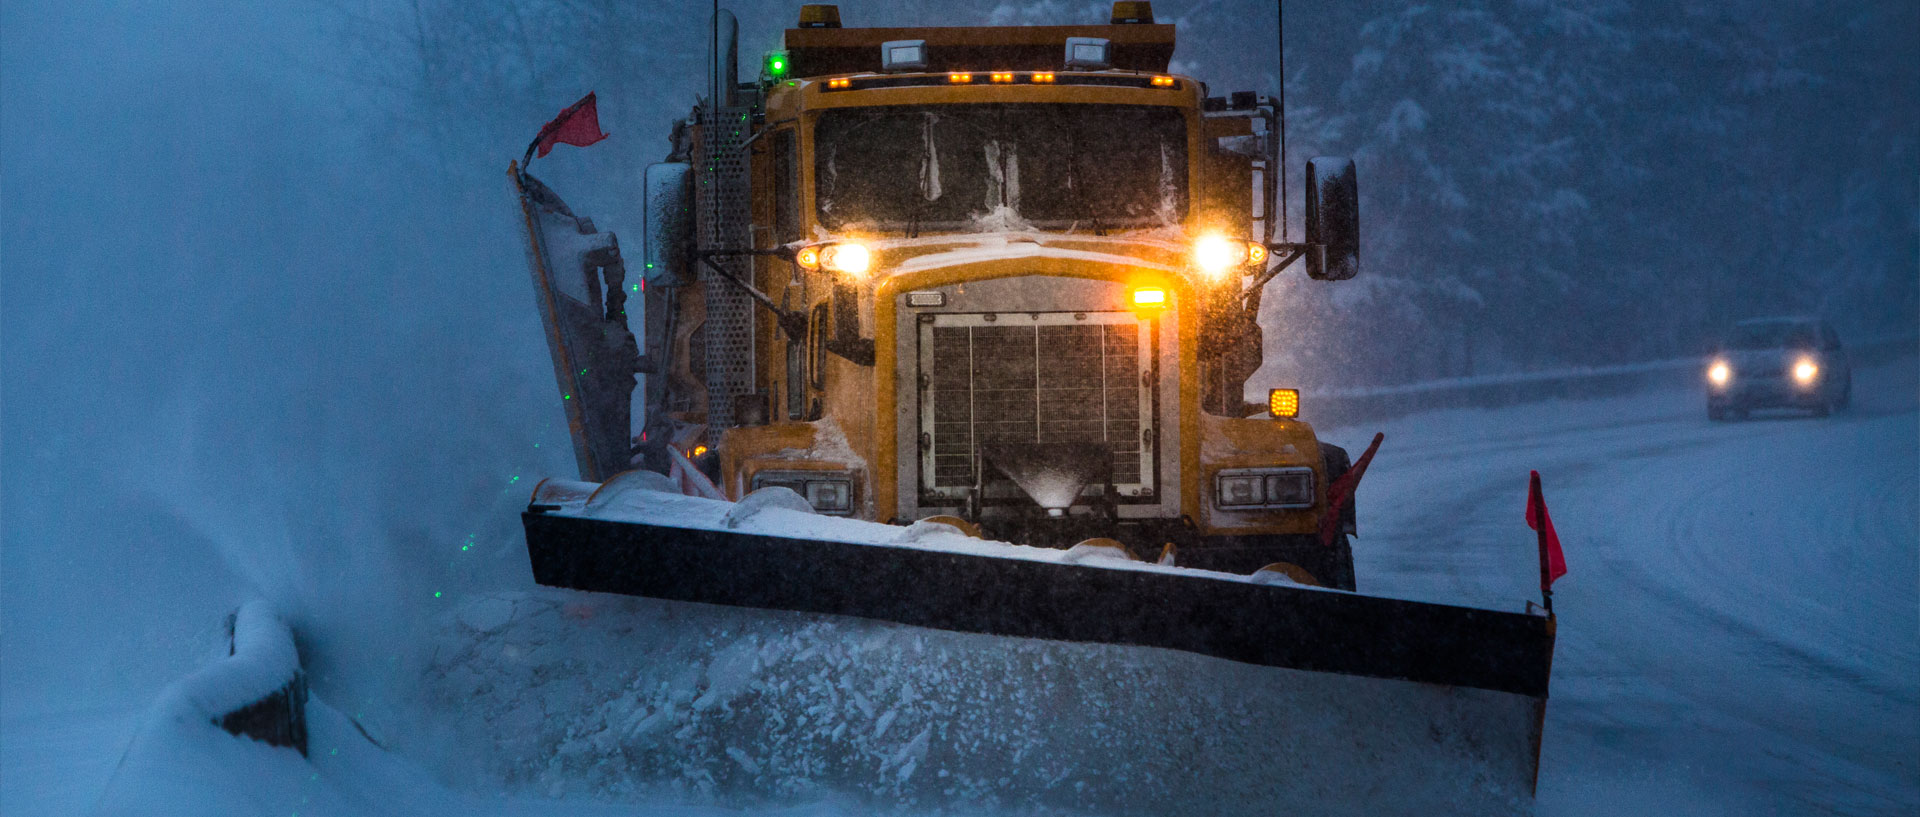 Plow Pros On How To Get Rid Of Snow